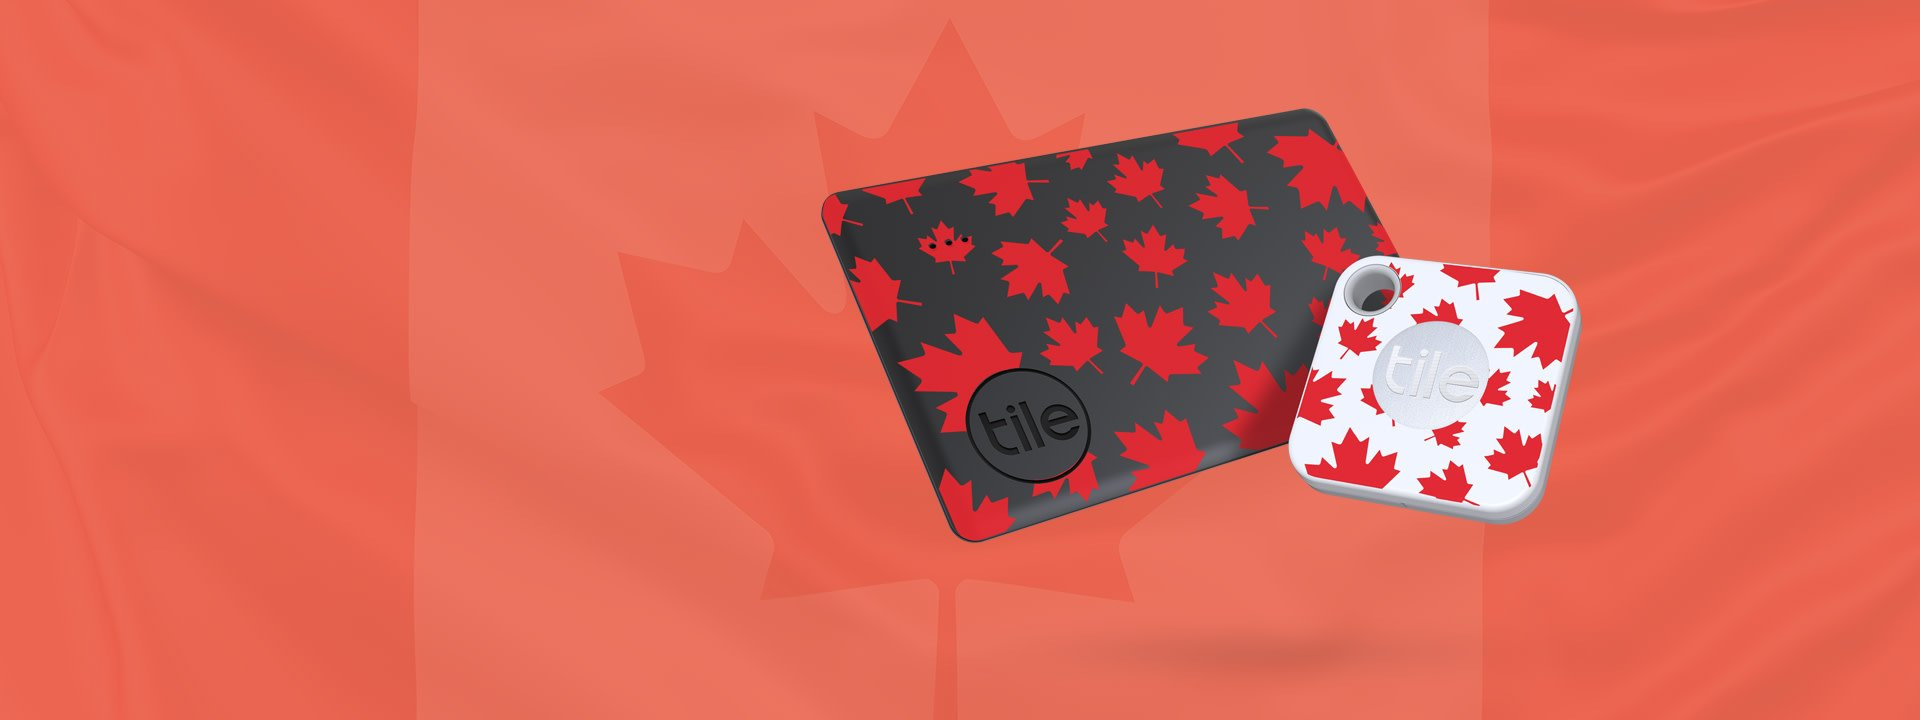 WIN20-Desktop-Maple-Leaf-Marquee-49-50-ALT